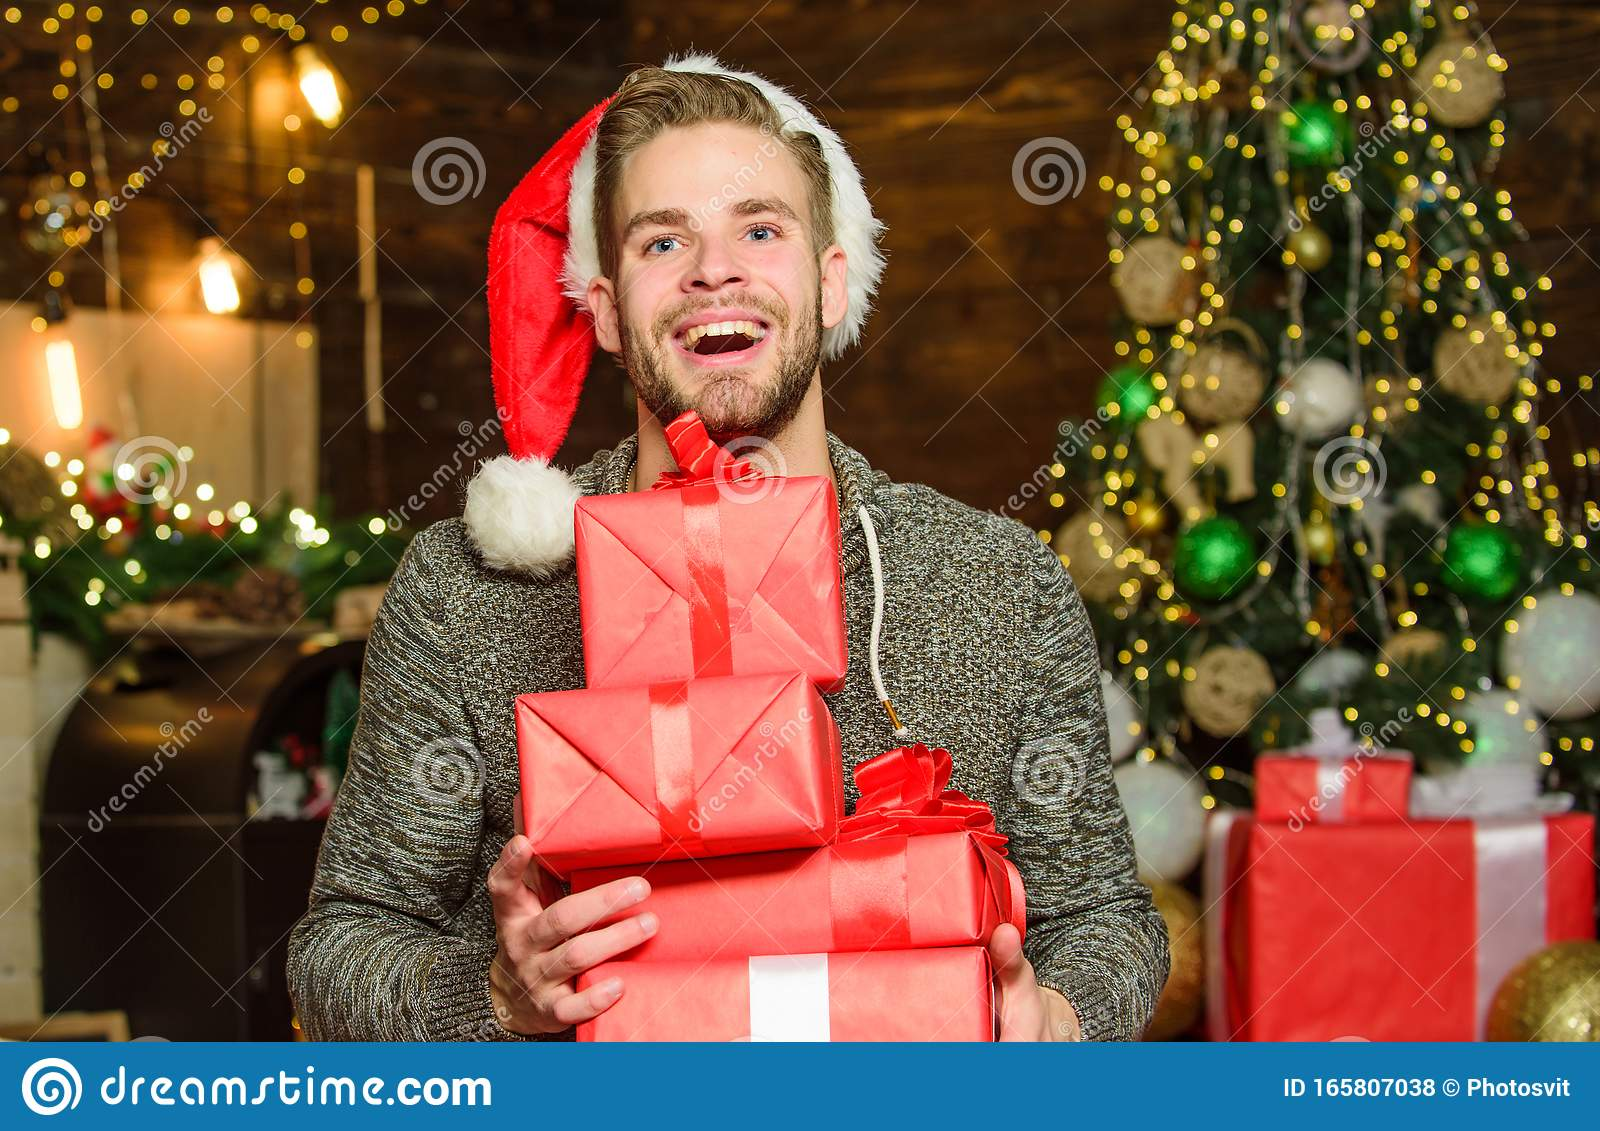 Just Look At That Xmas Holiday Gift Decorate Christmas Tree Last Preparation Christmas Time Cheerful Man Red Santa Stock Photo Image Of Gift Family 165807038